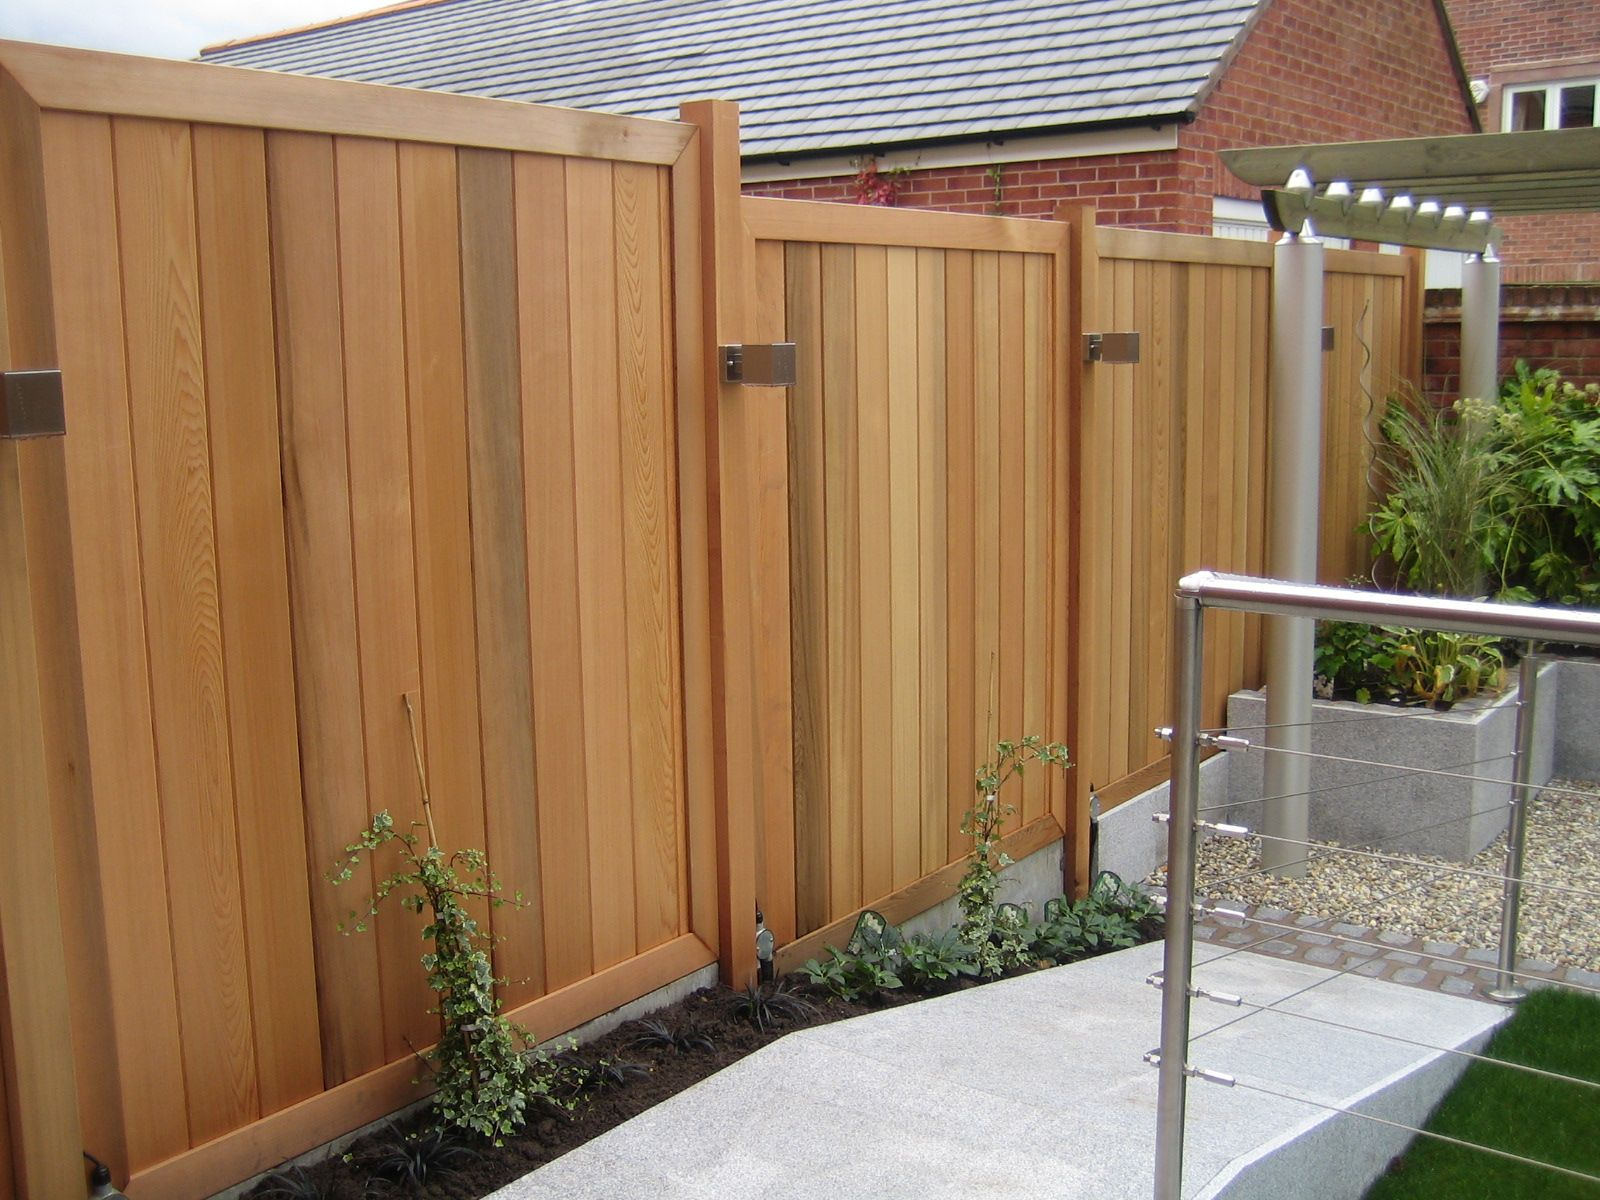 cedar fencing panels and posts with stainless steel downlights from a design by www